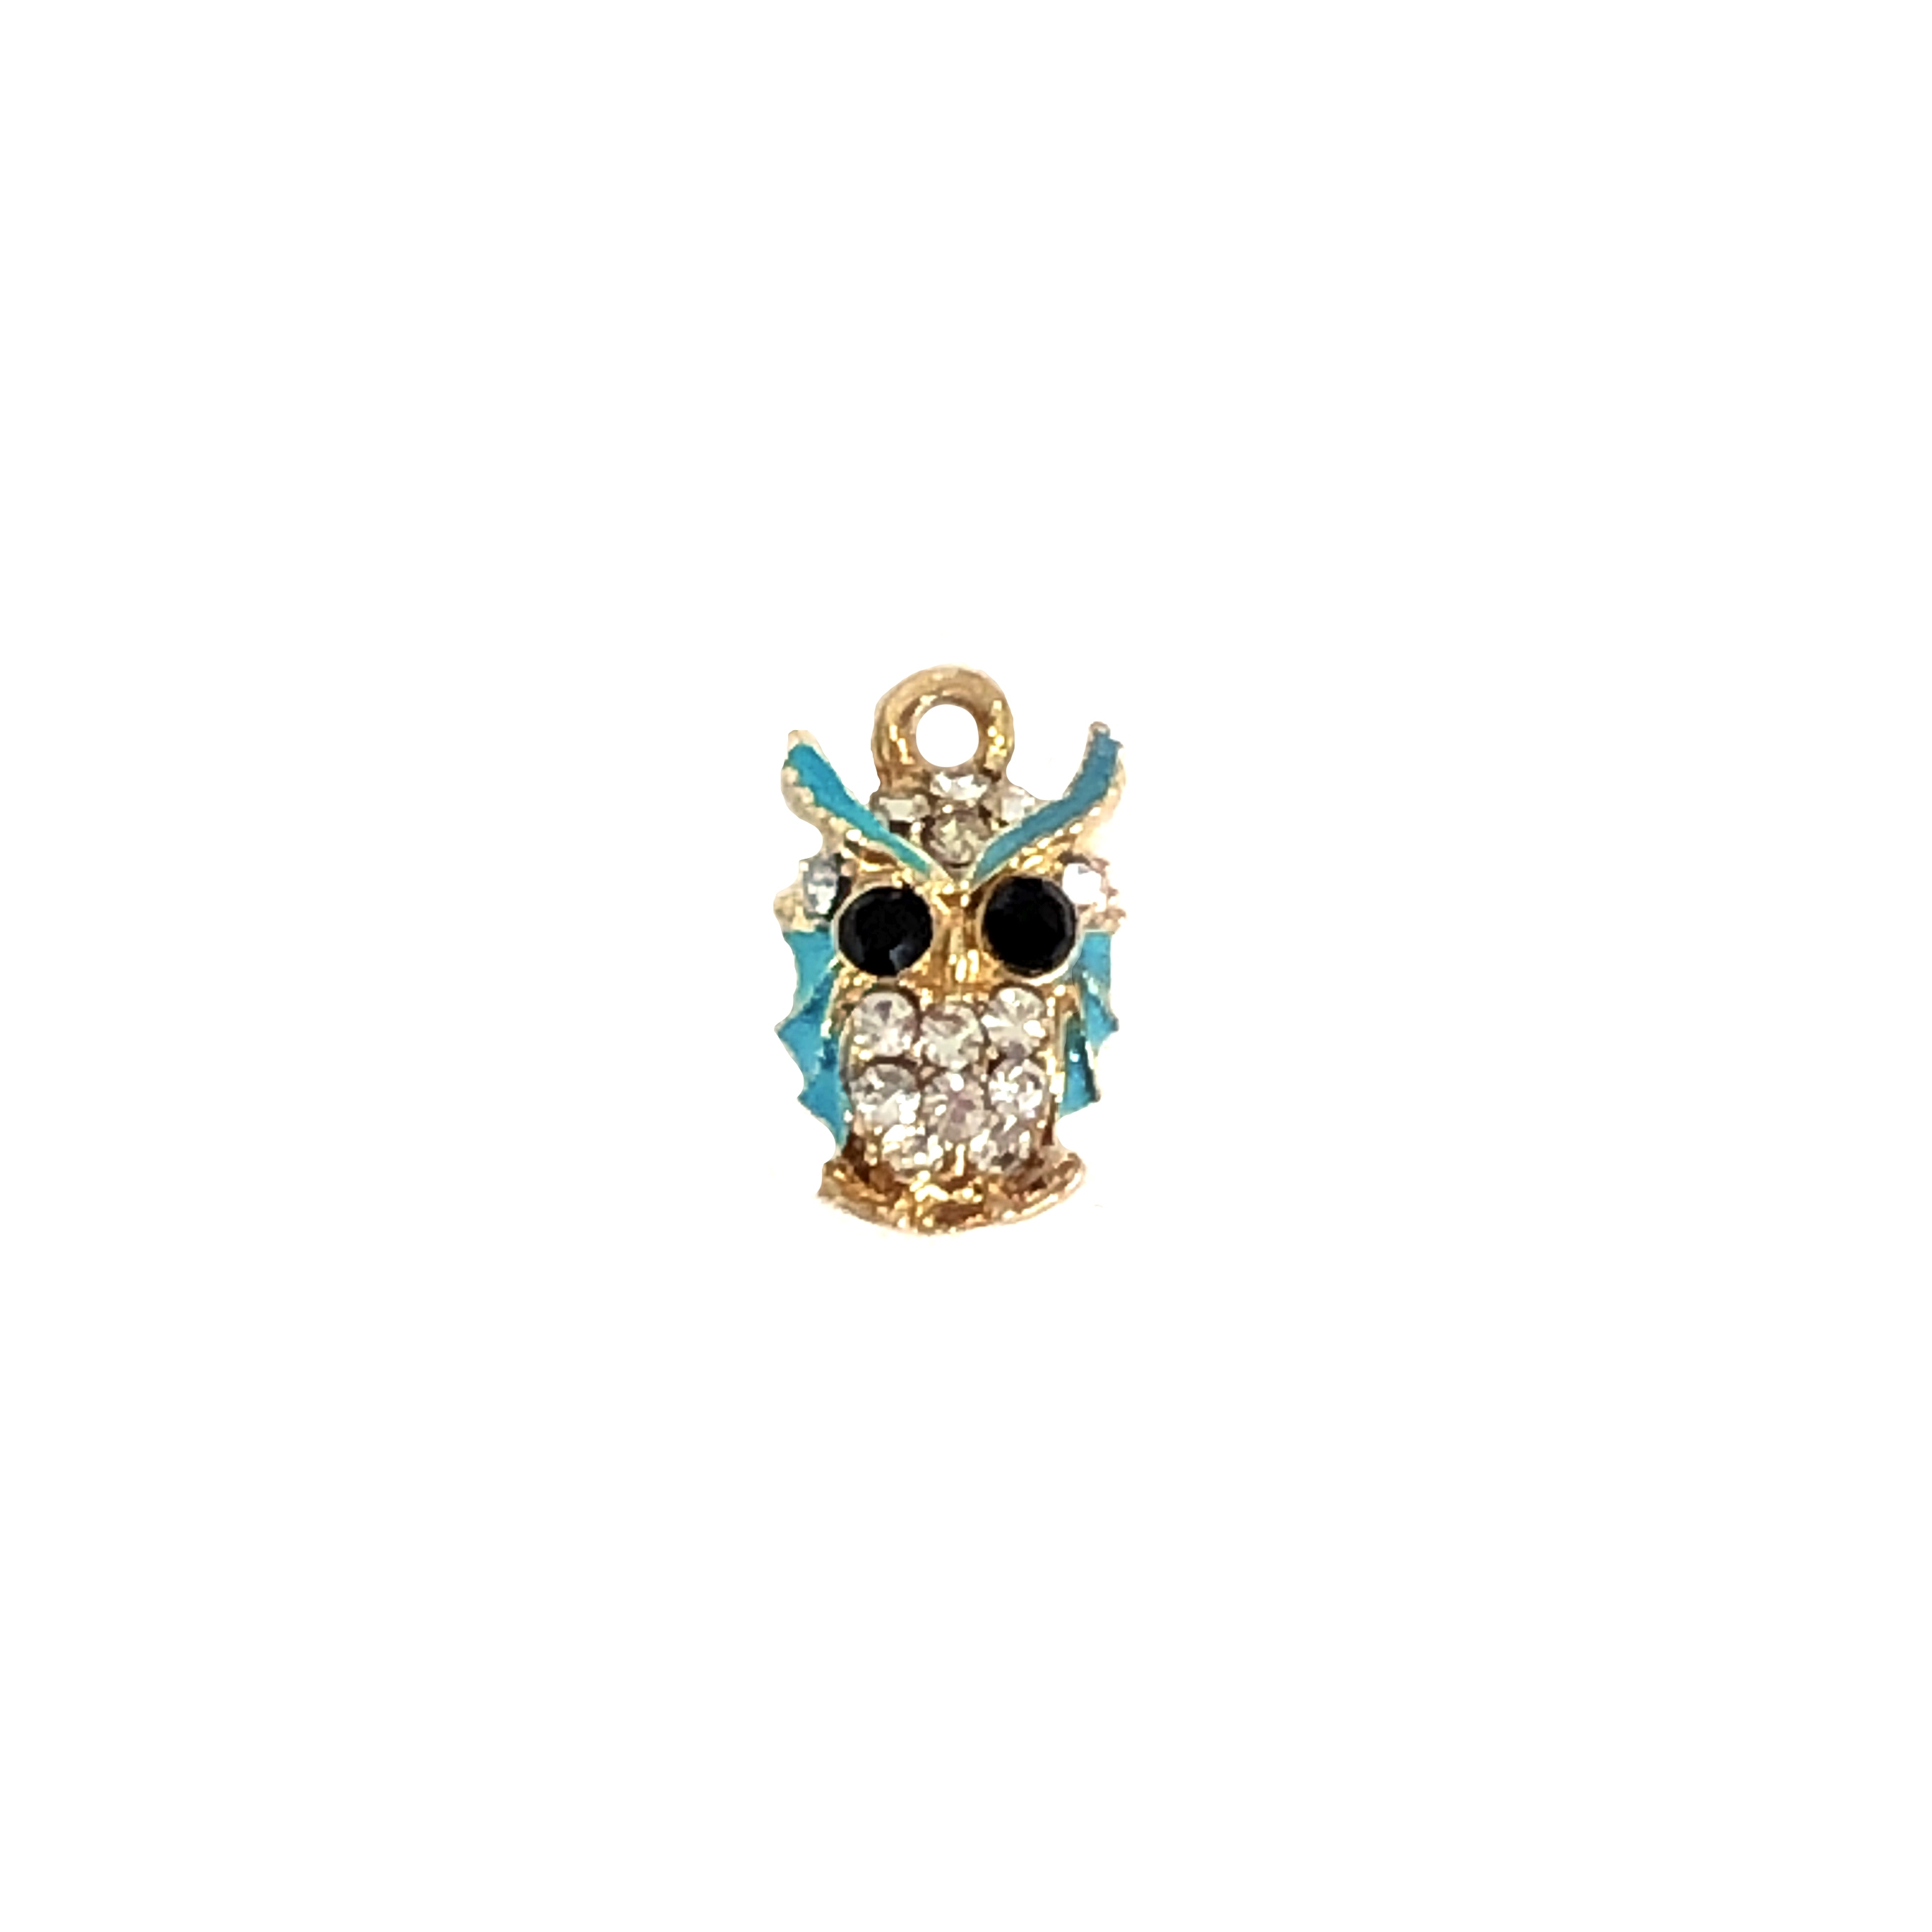 owl charm, bird, gold plated, 01073, 15x9mm, earring findings, owls, enamel charm, enameling, turquoise enamel, rhinestone owl, rhinestone charm, birds, animals